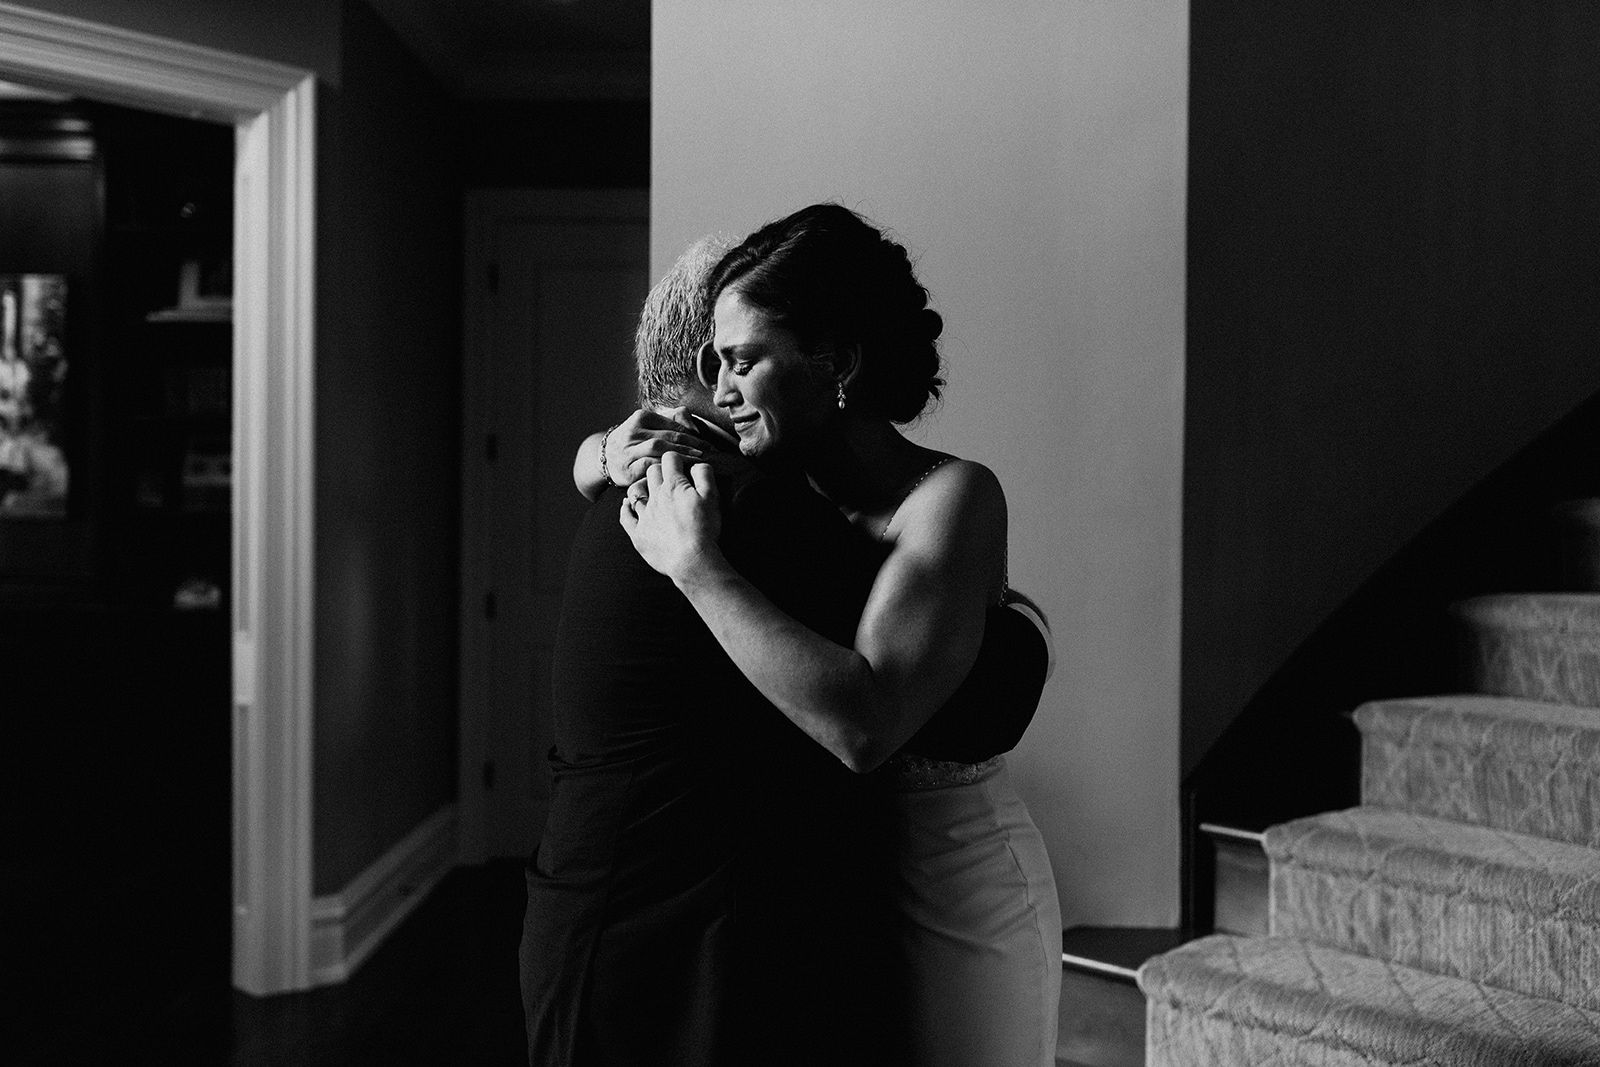 Pittsburghweddingphotography (156 of 1503).jpg